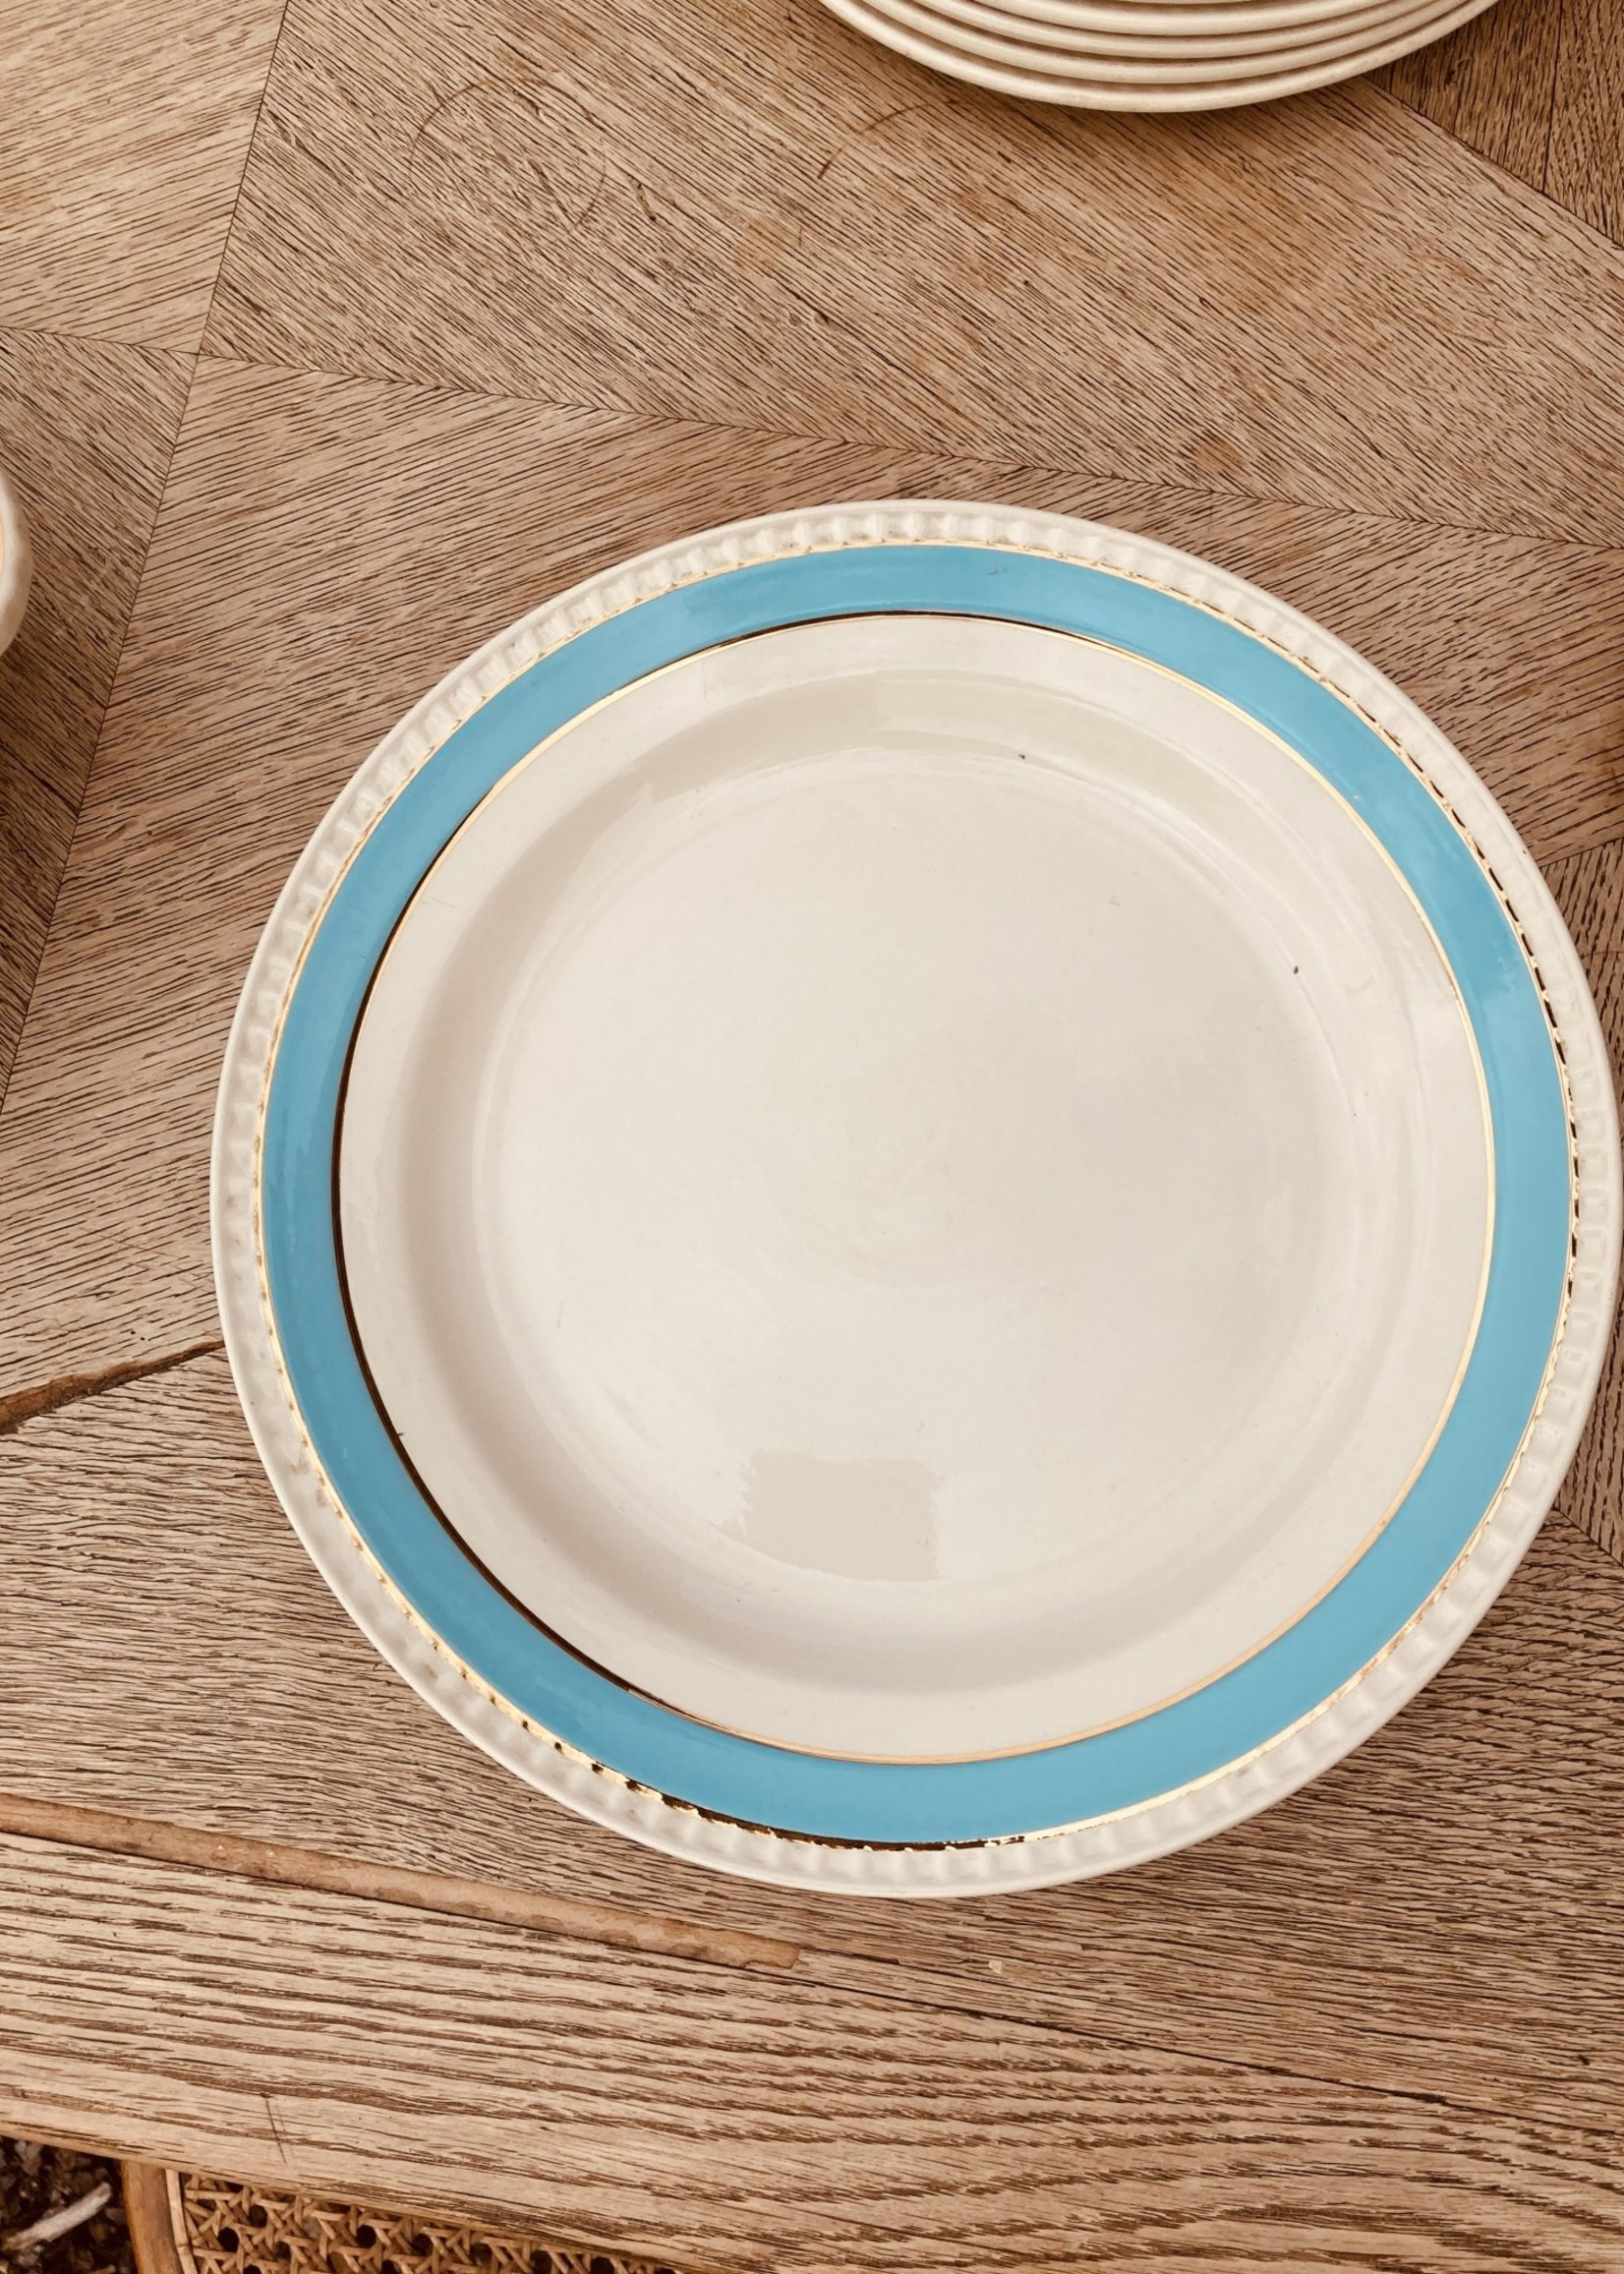 Boch Dish round with light blue border and 2 golden lines